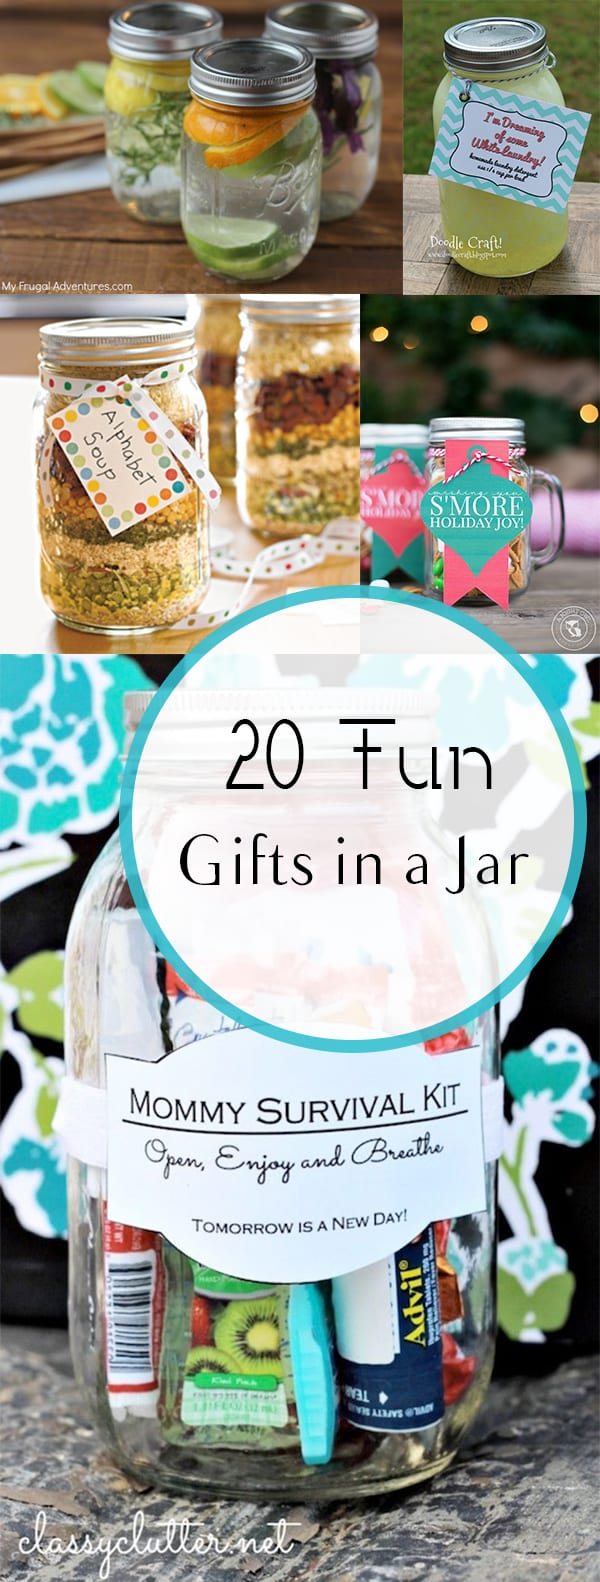 Gifts in a Jar, DIY Gifts in a Jar, Gifts in a Jar Ideas, Gifts in a Jar for Teens, Gifts in a Jar for Her, Gifts in a Jar for Him, DIY, Gifts, Gift Ideas